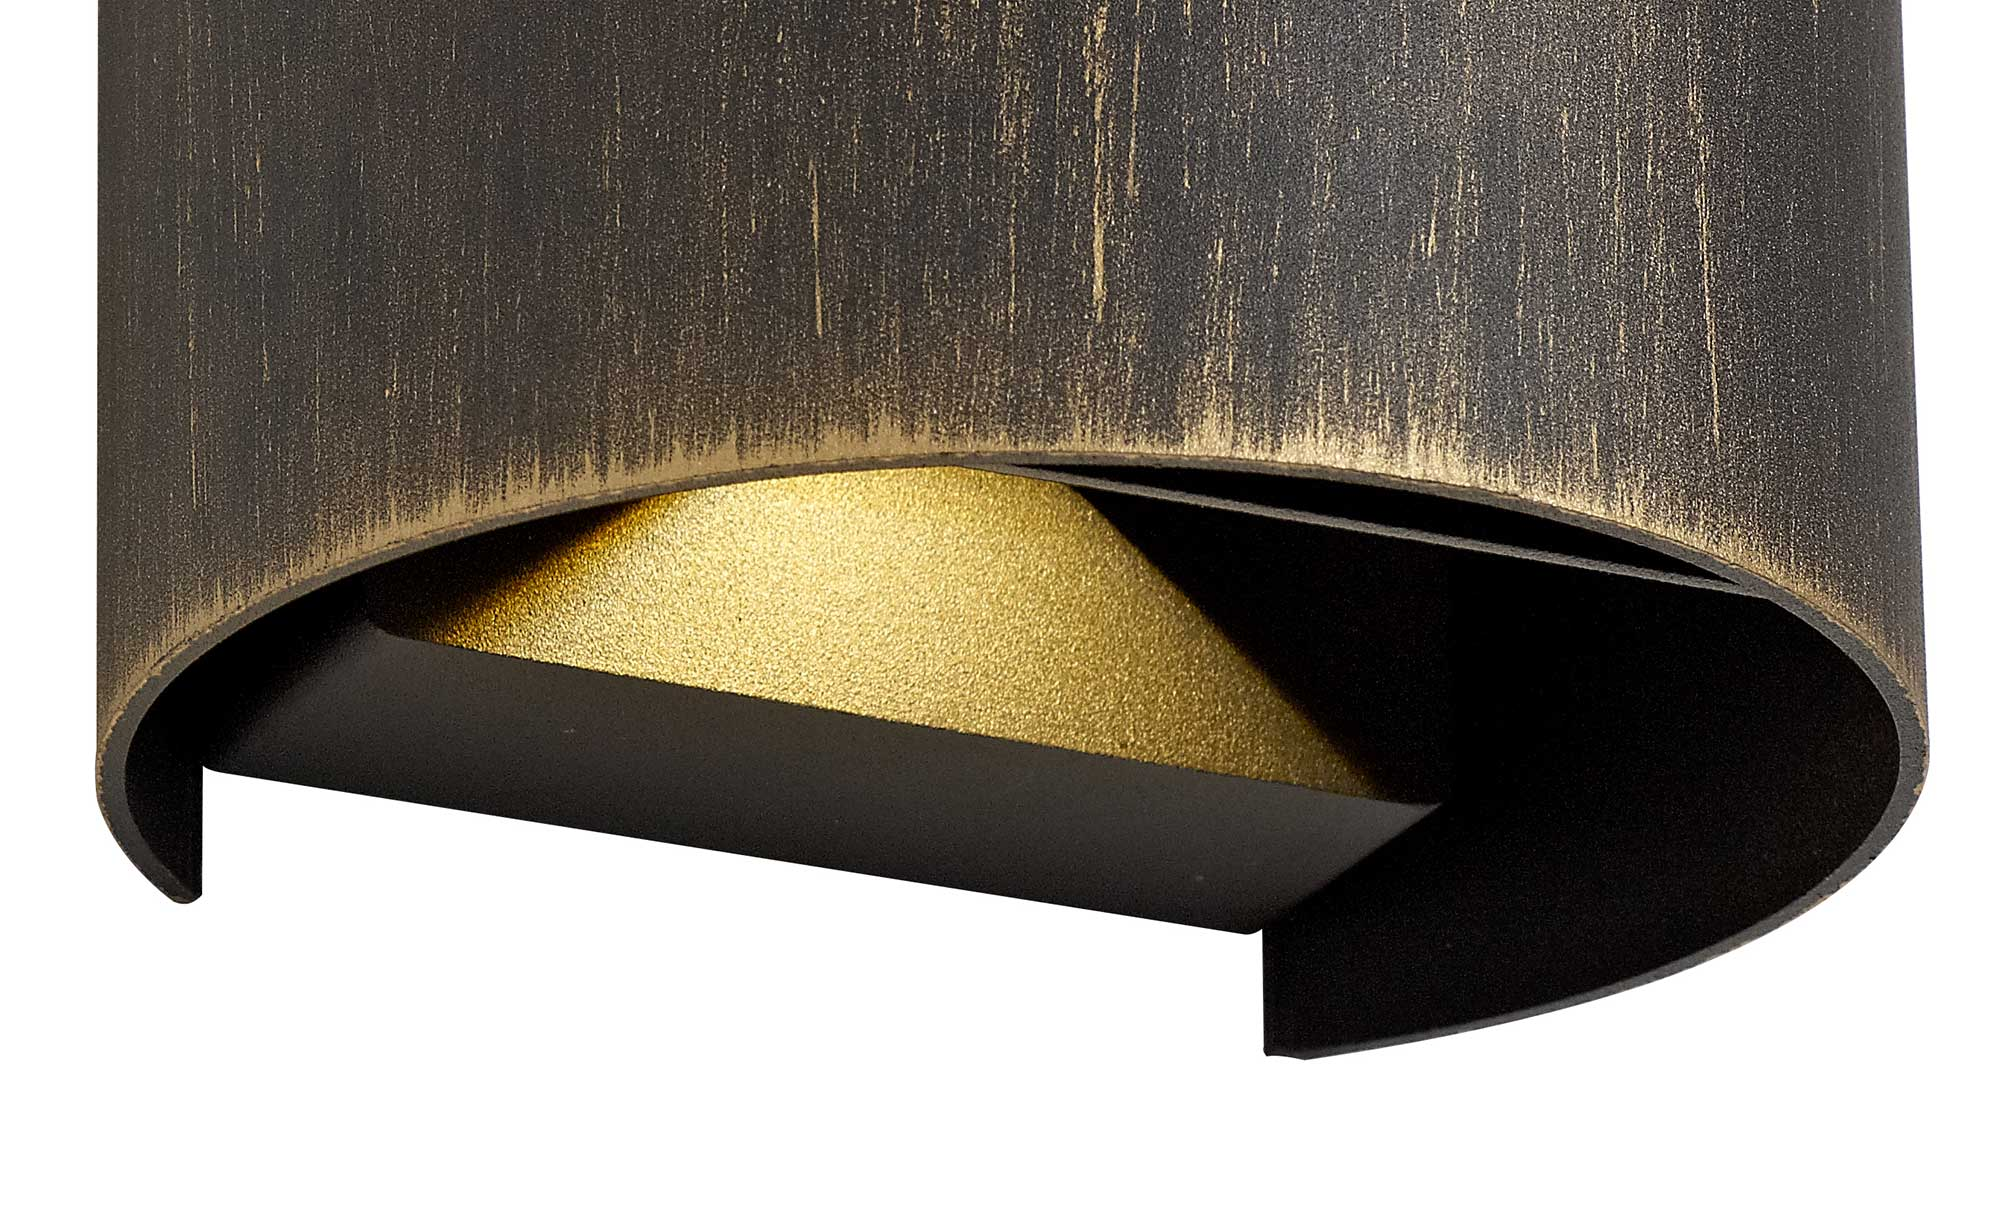 Up & Downward Lighting Wall Lamp, 2 x 3W LED, 3000K, 410lm, IP54, Black/Gold, 3yrs Warranty